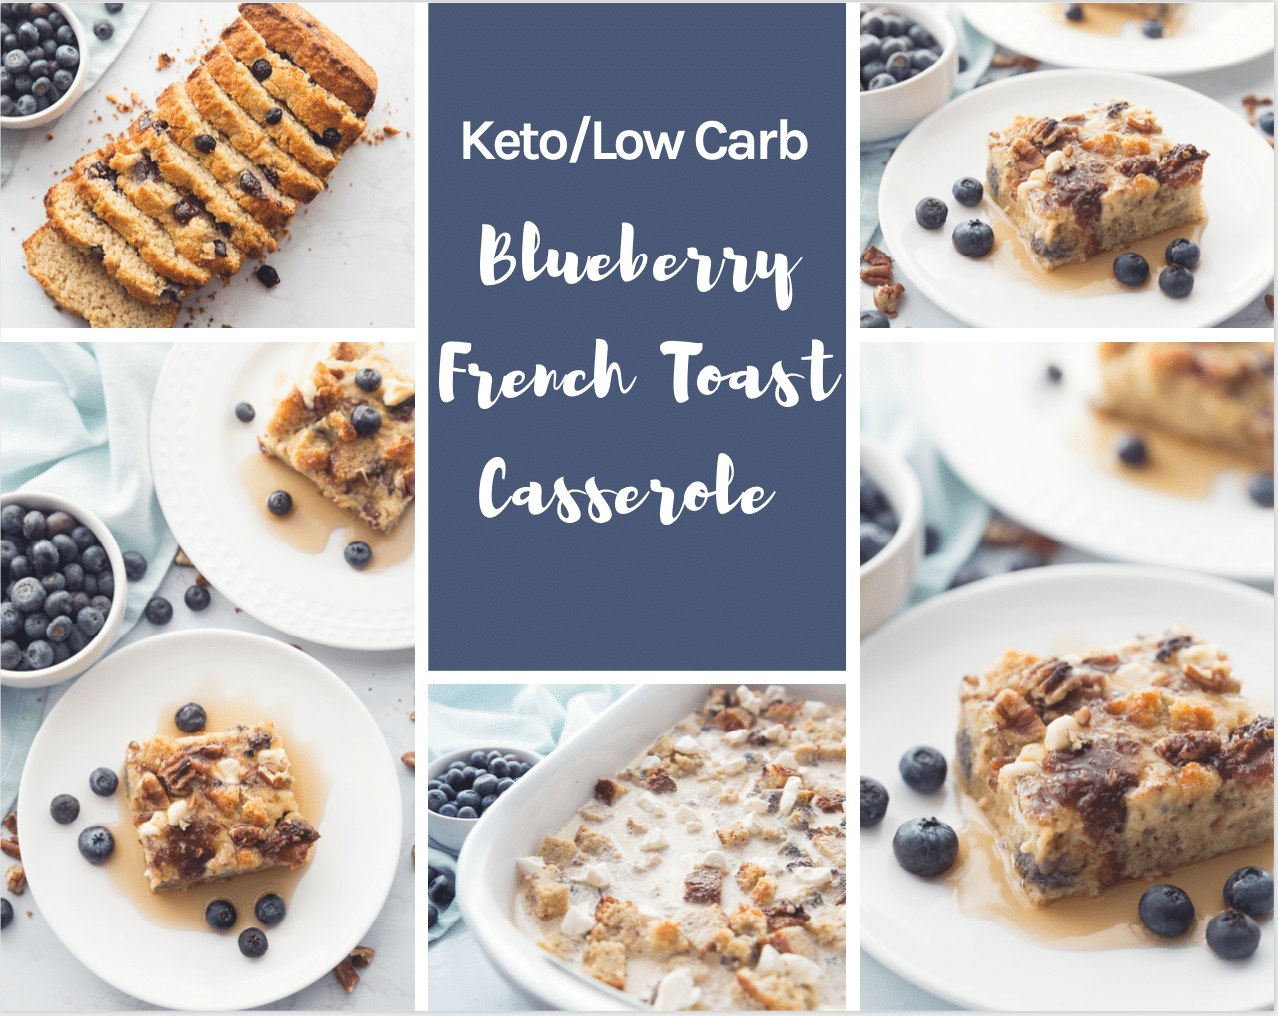 Waking up to a hearty and delicious Keto breakfast is the perfect way to start the day! This Keto Blueberry French Toast Casserole is an amazing balance of sweet and delicious, with just a nice taste of blueberry. #keto #lowcarb